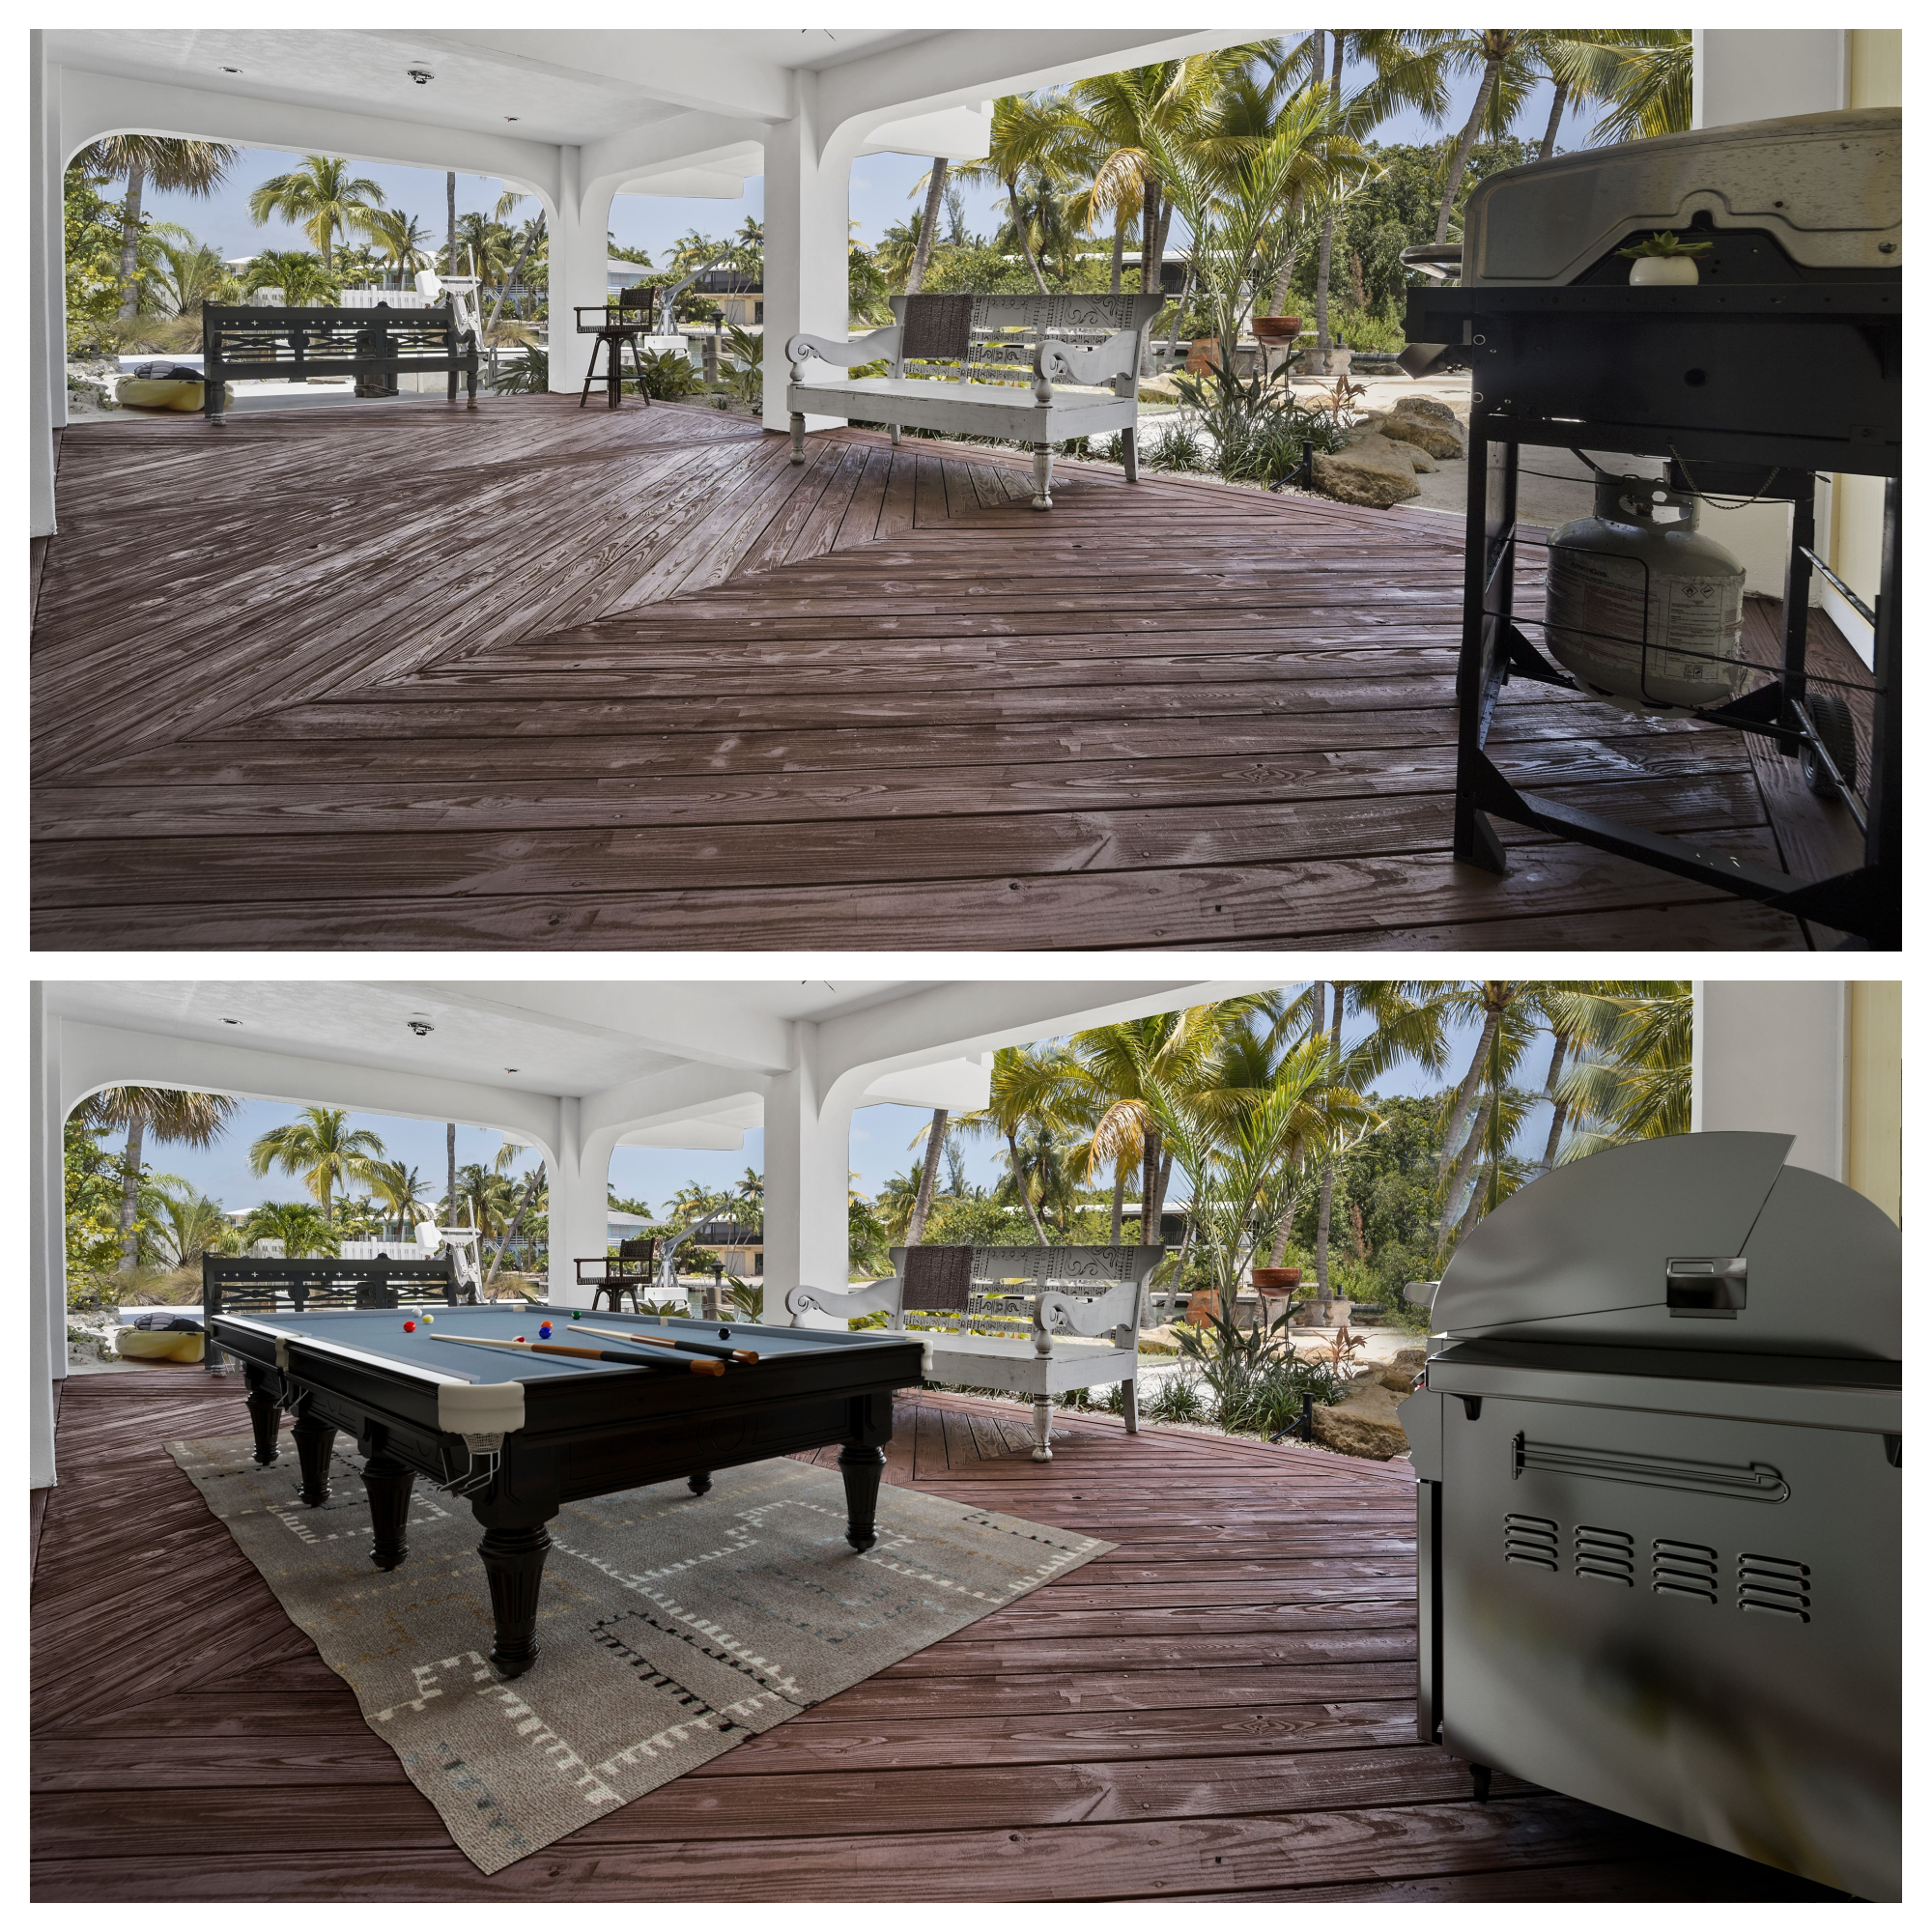 Outdoor Patio With New Grill and Pool Table